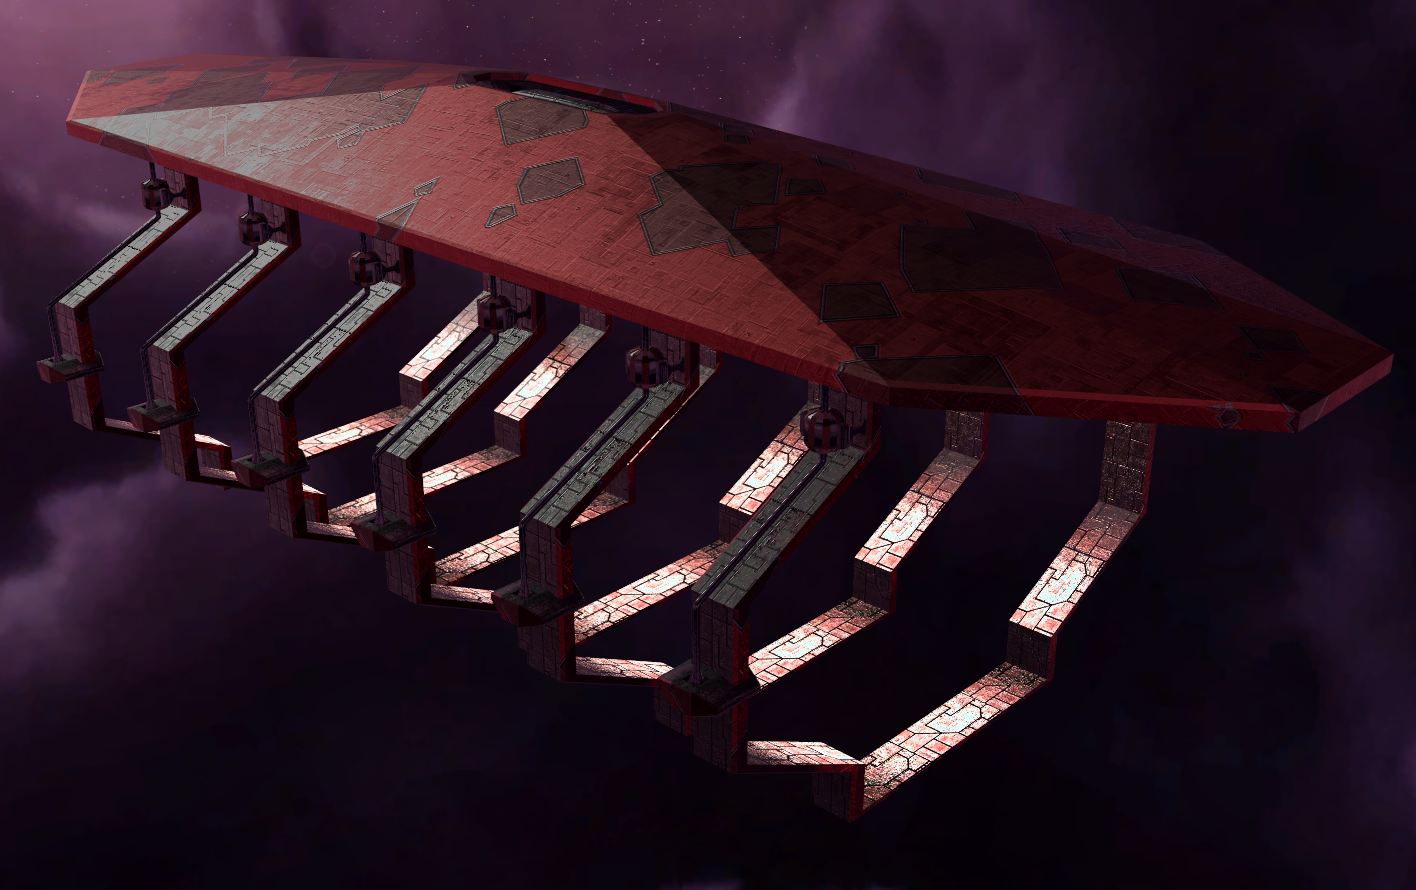 Narn frigate factory orbital structure